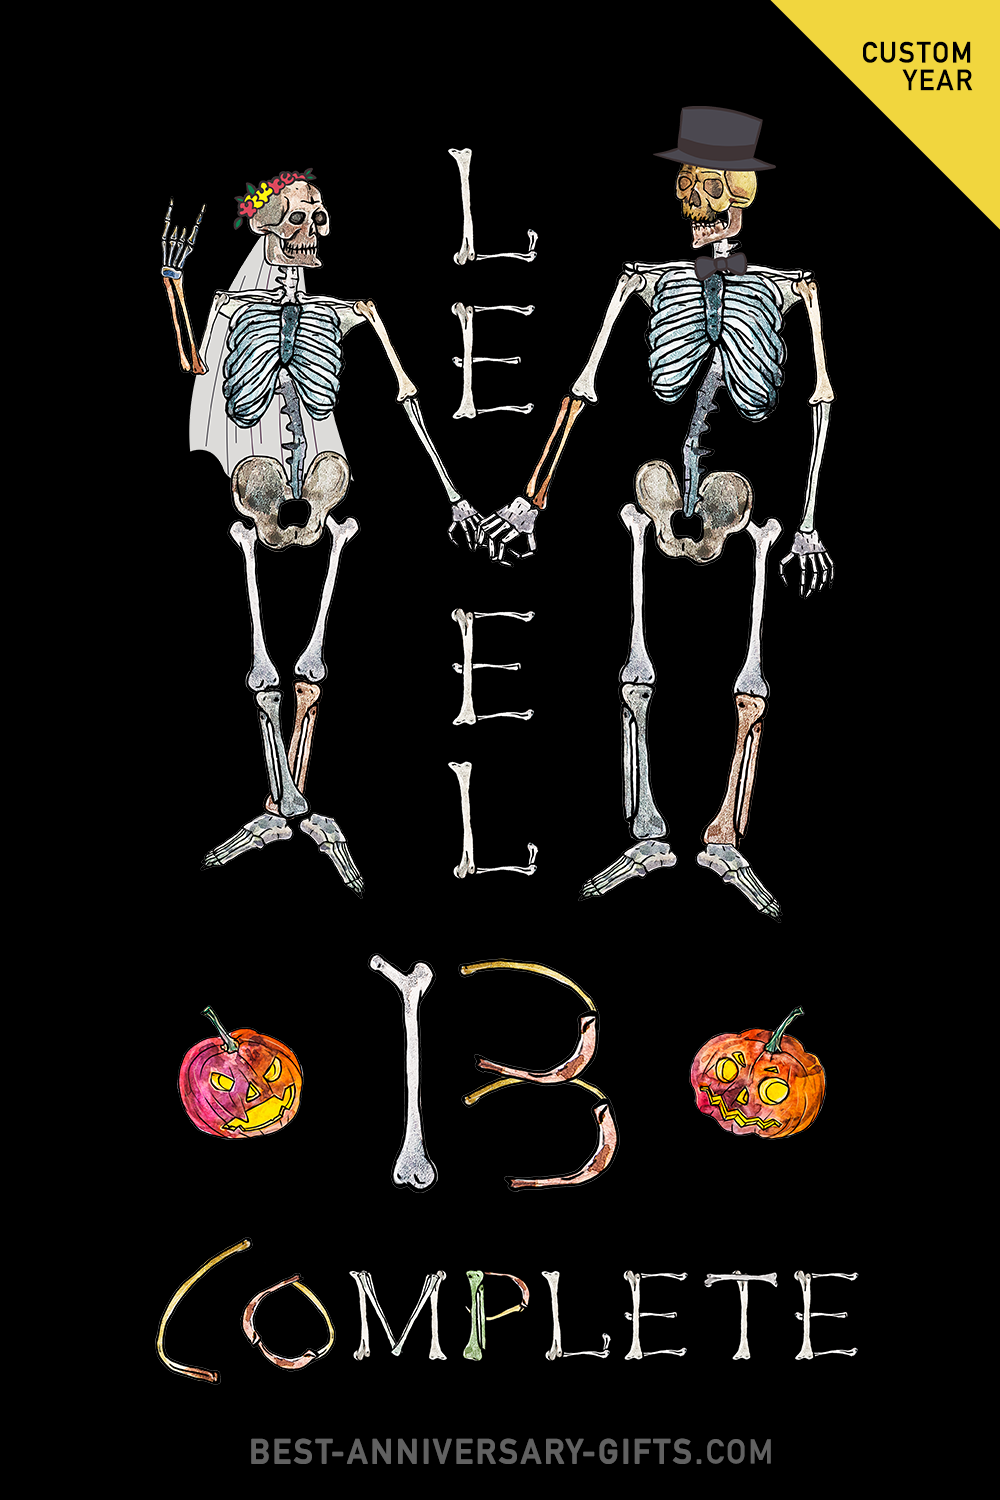 Level 13 Completed - Funny Skeletons Personalized Wedding Anniversary Clipart